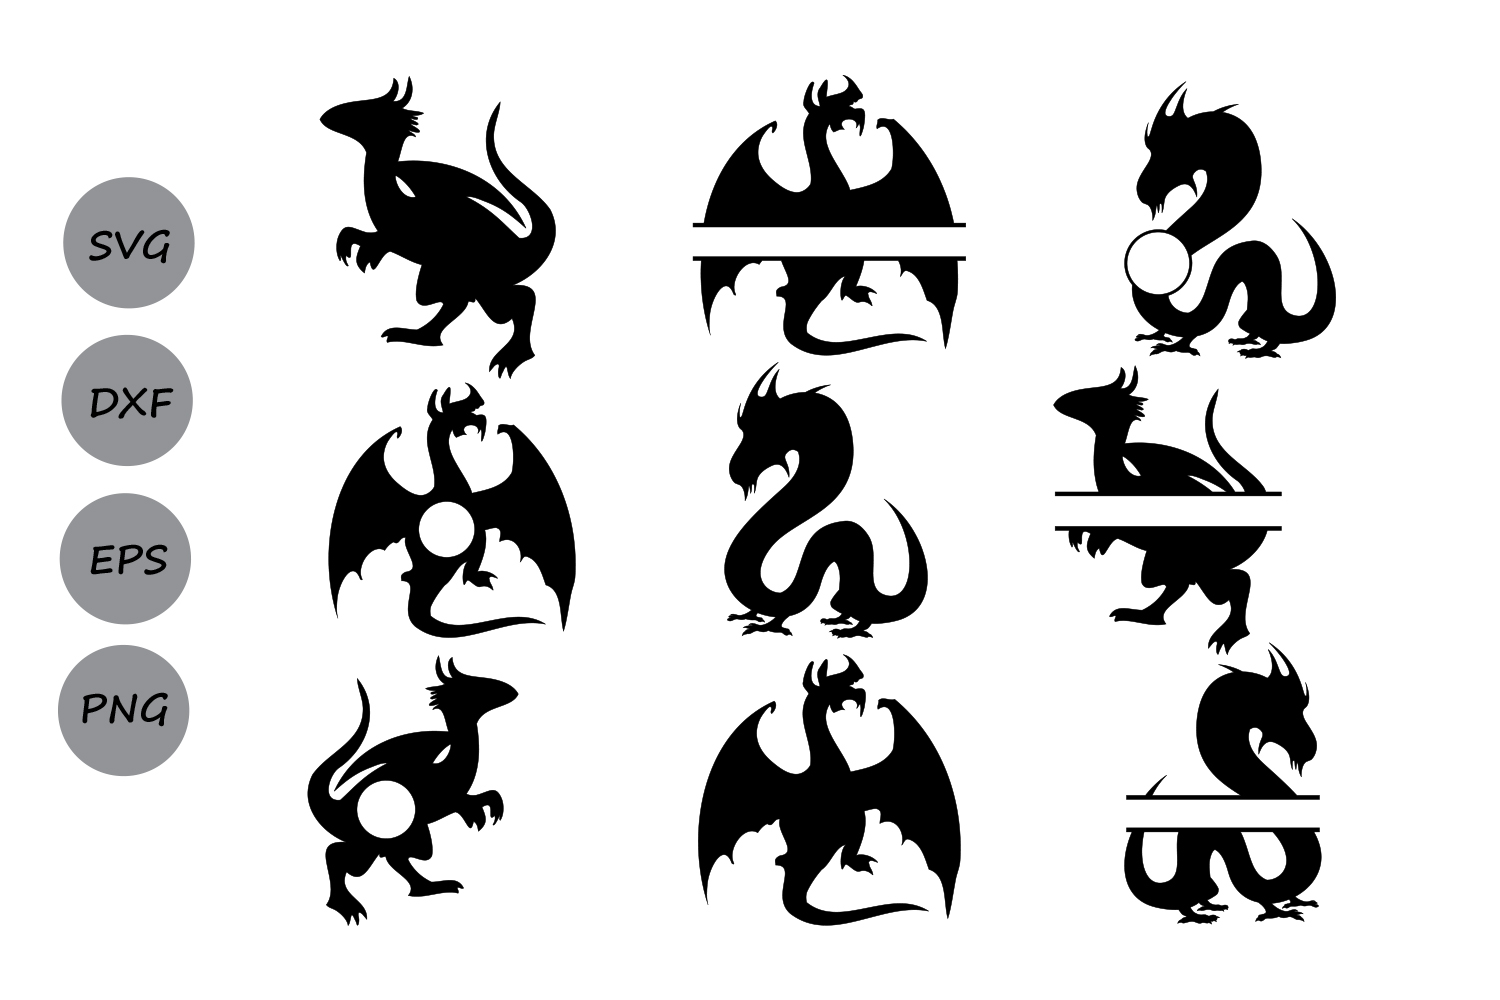 hight resolution of dragon svg dragon monogram svg dragon clipart dragon silhouette silhouette files